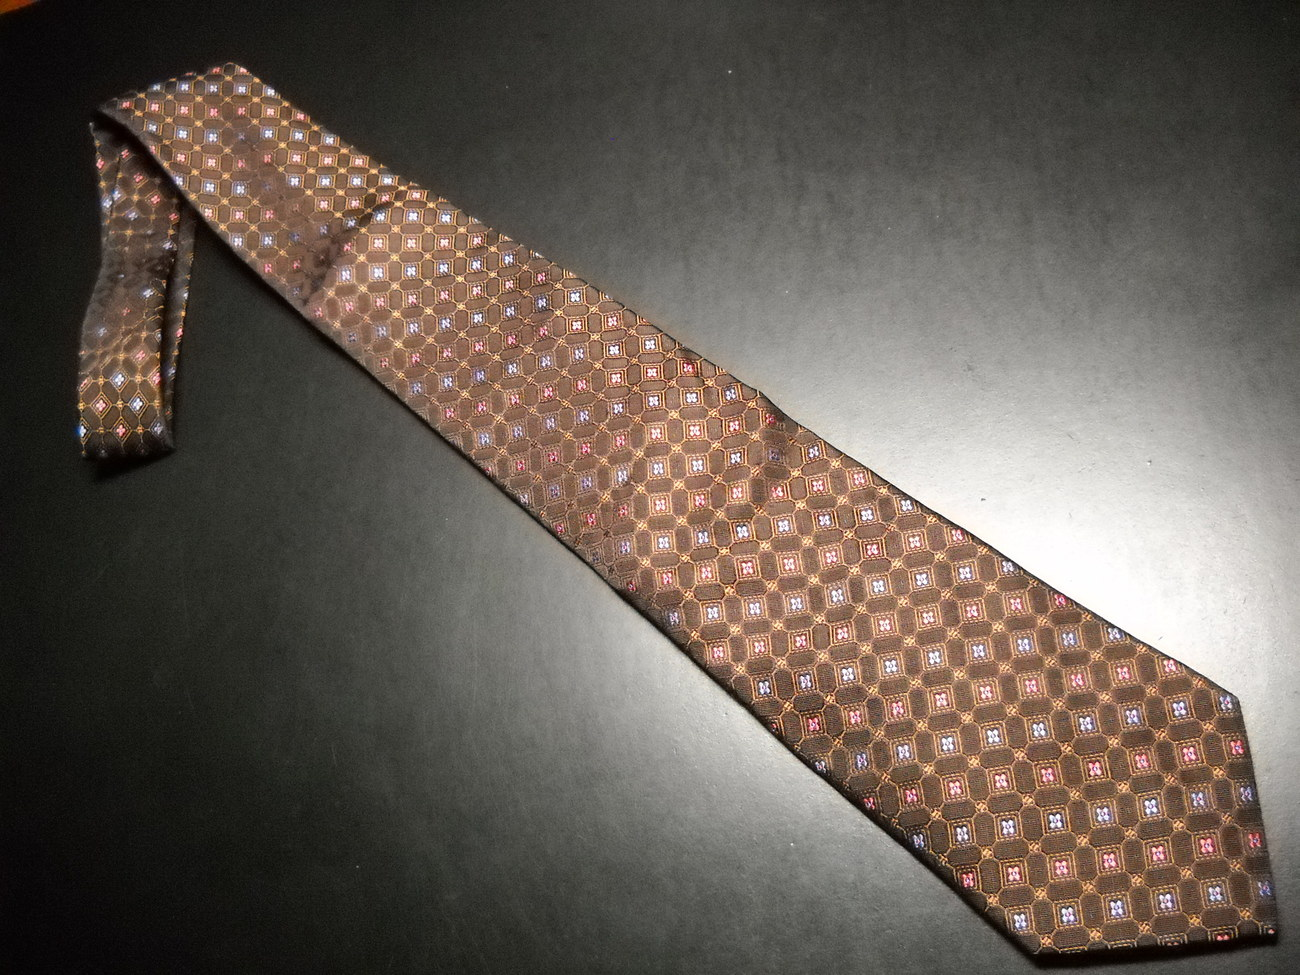 Hart Schaffner Marx Neck Tie Silk Browns with Accents of Reddish Orange and Blue